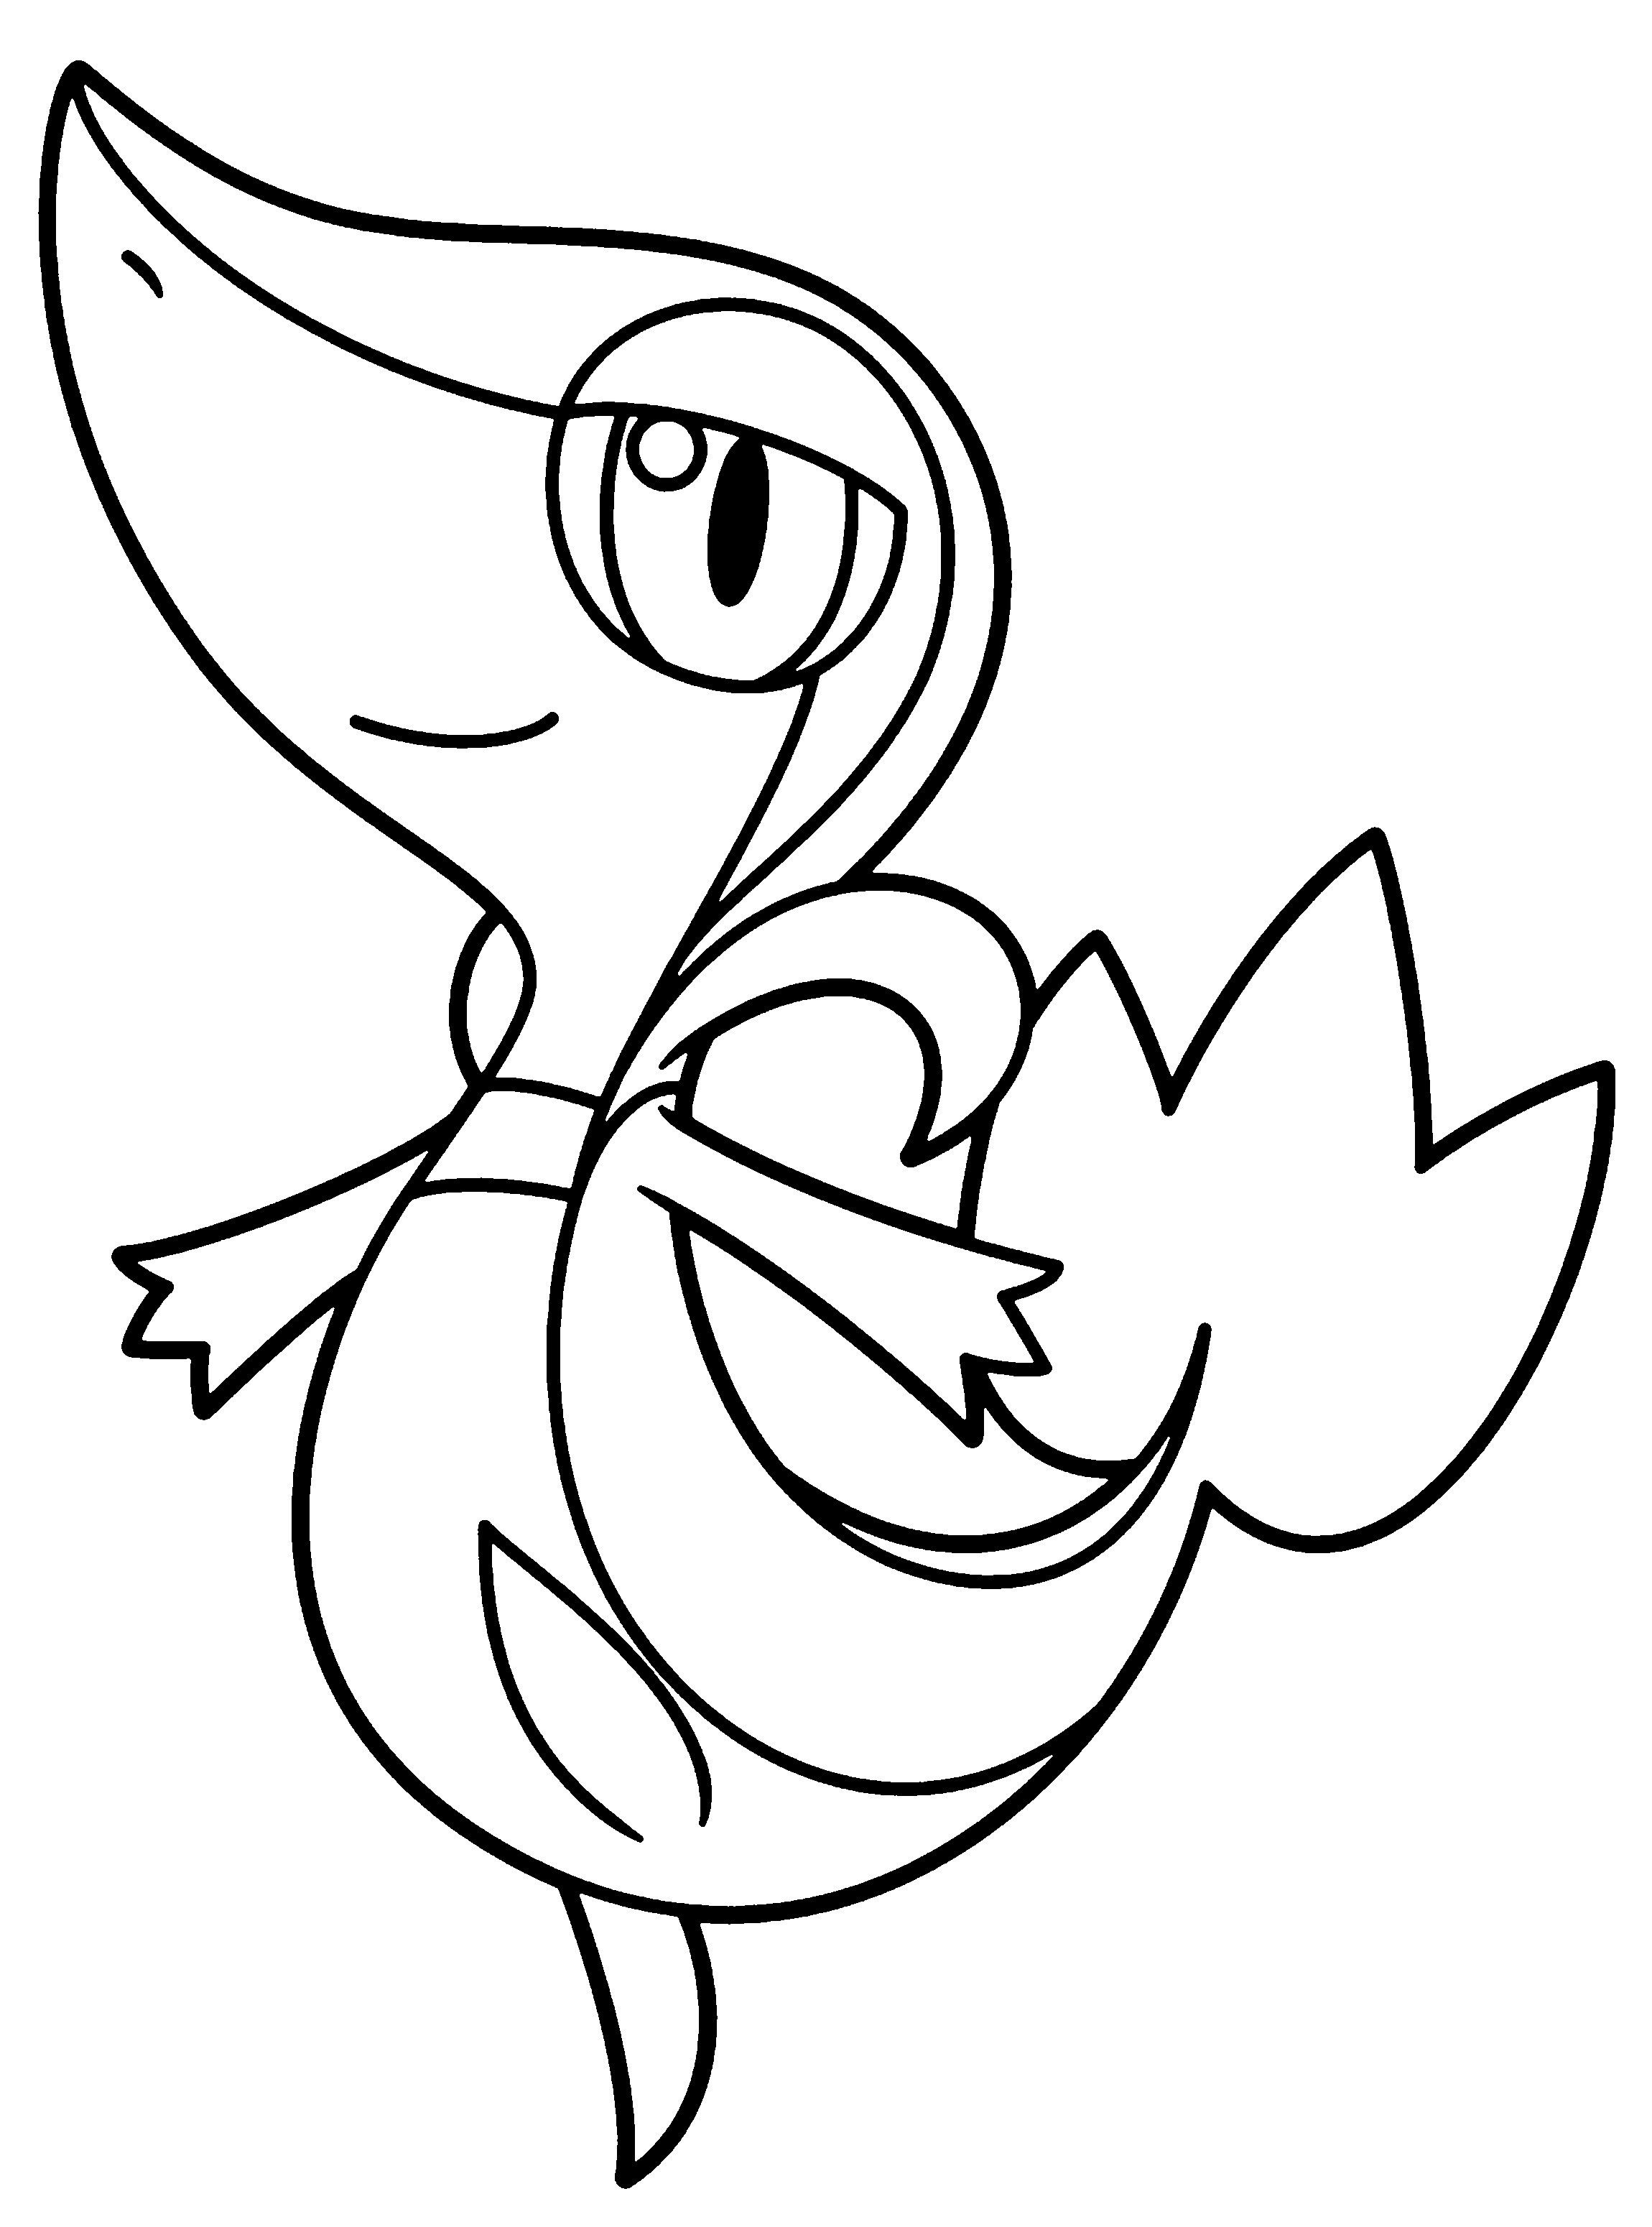 Ivy Pokemon Coloring Pages Through The Thousands Of Photos On Line In Relation To Ivy Pokemon Pokemon Coloring Pokemon Coloring Pages Cartoon Coloring Pages [ 3100 x 2300 Pixel ]